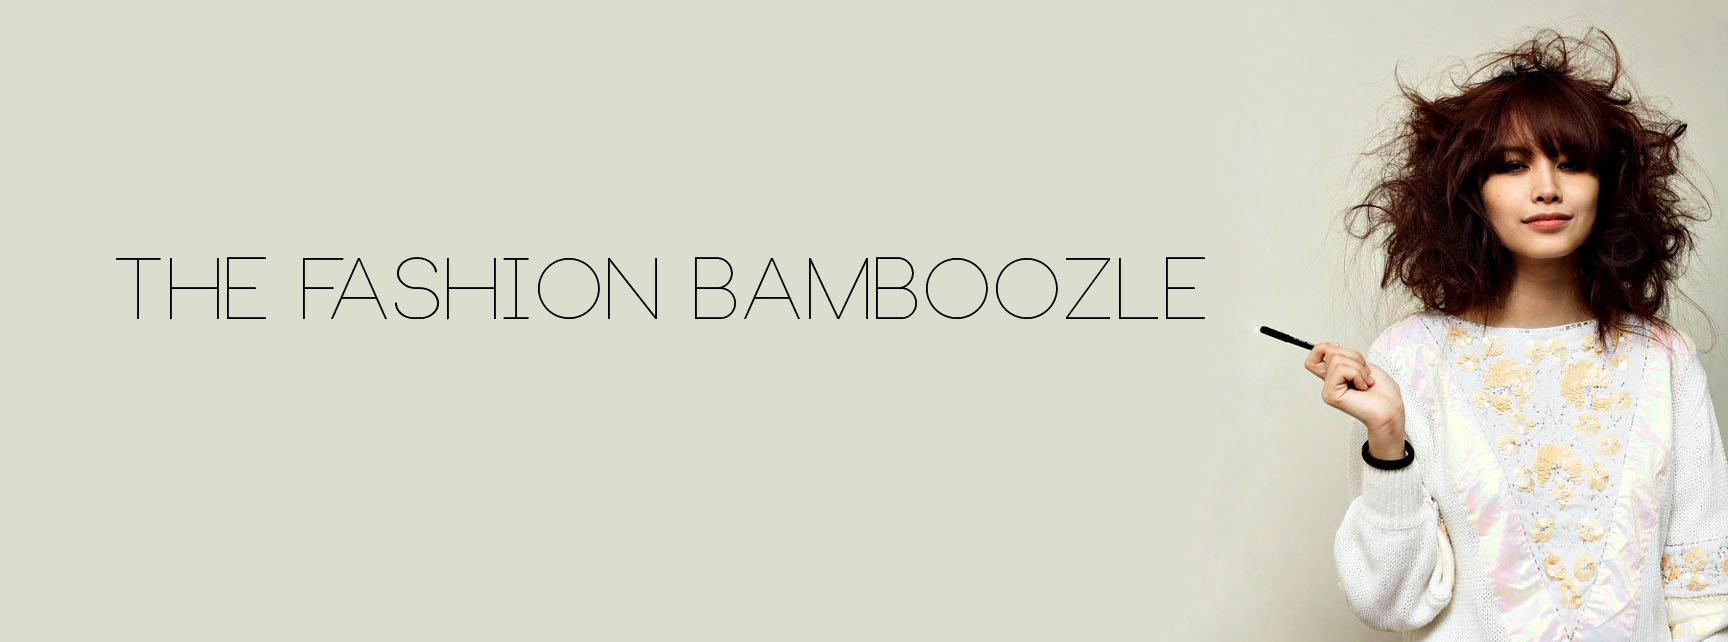 The Fashion Bamboozle